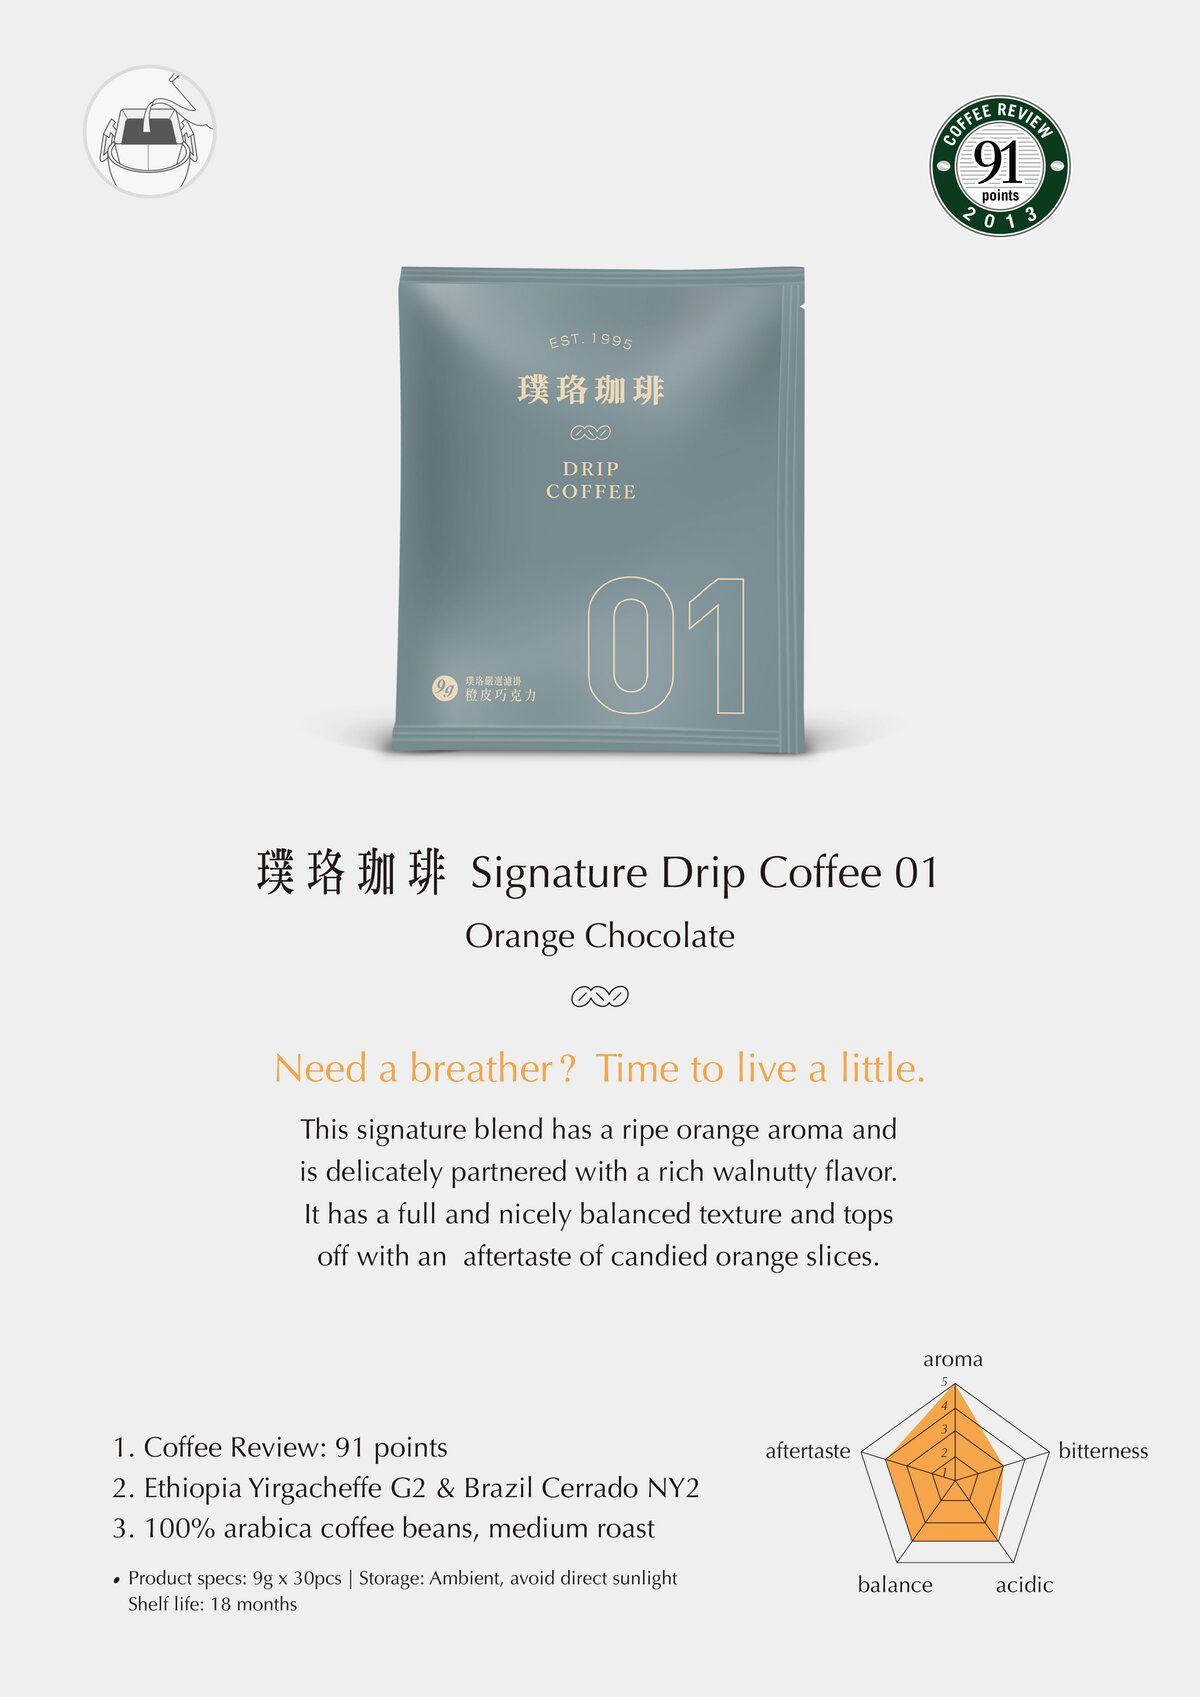 more information about drip coffee orange chocolate